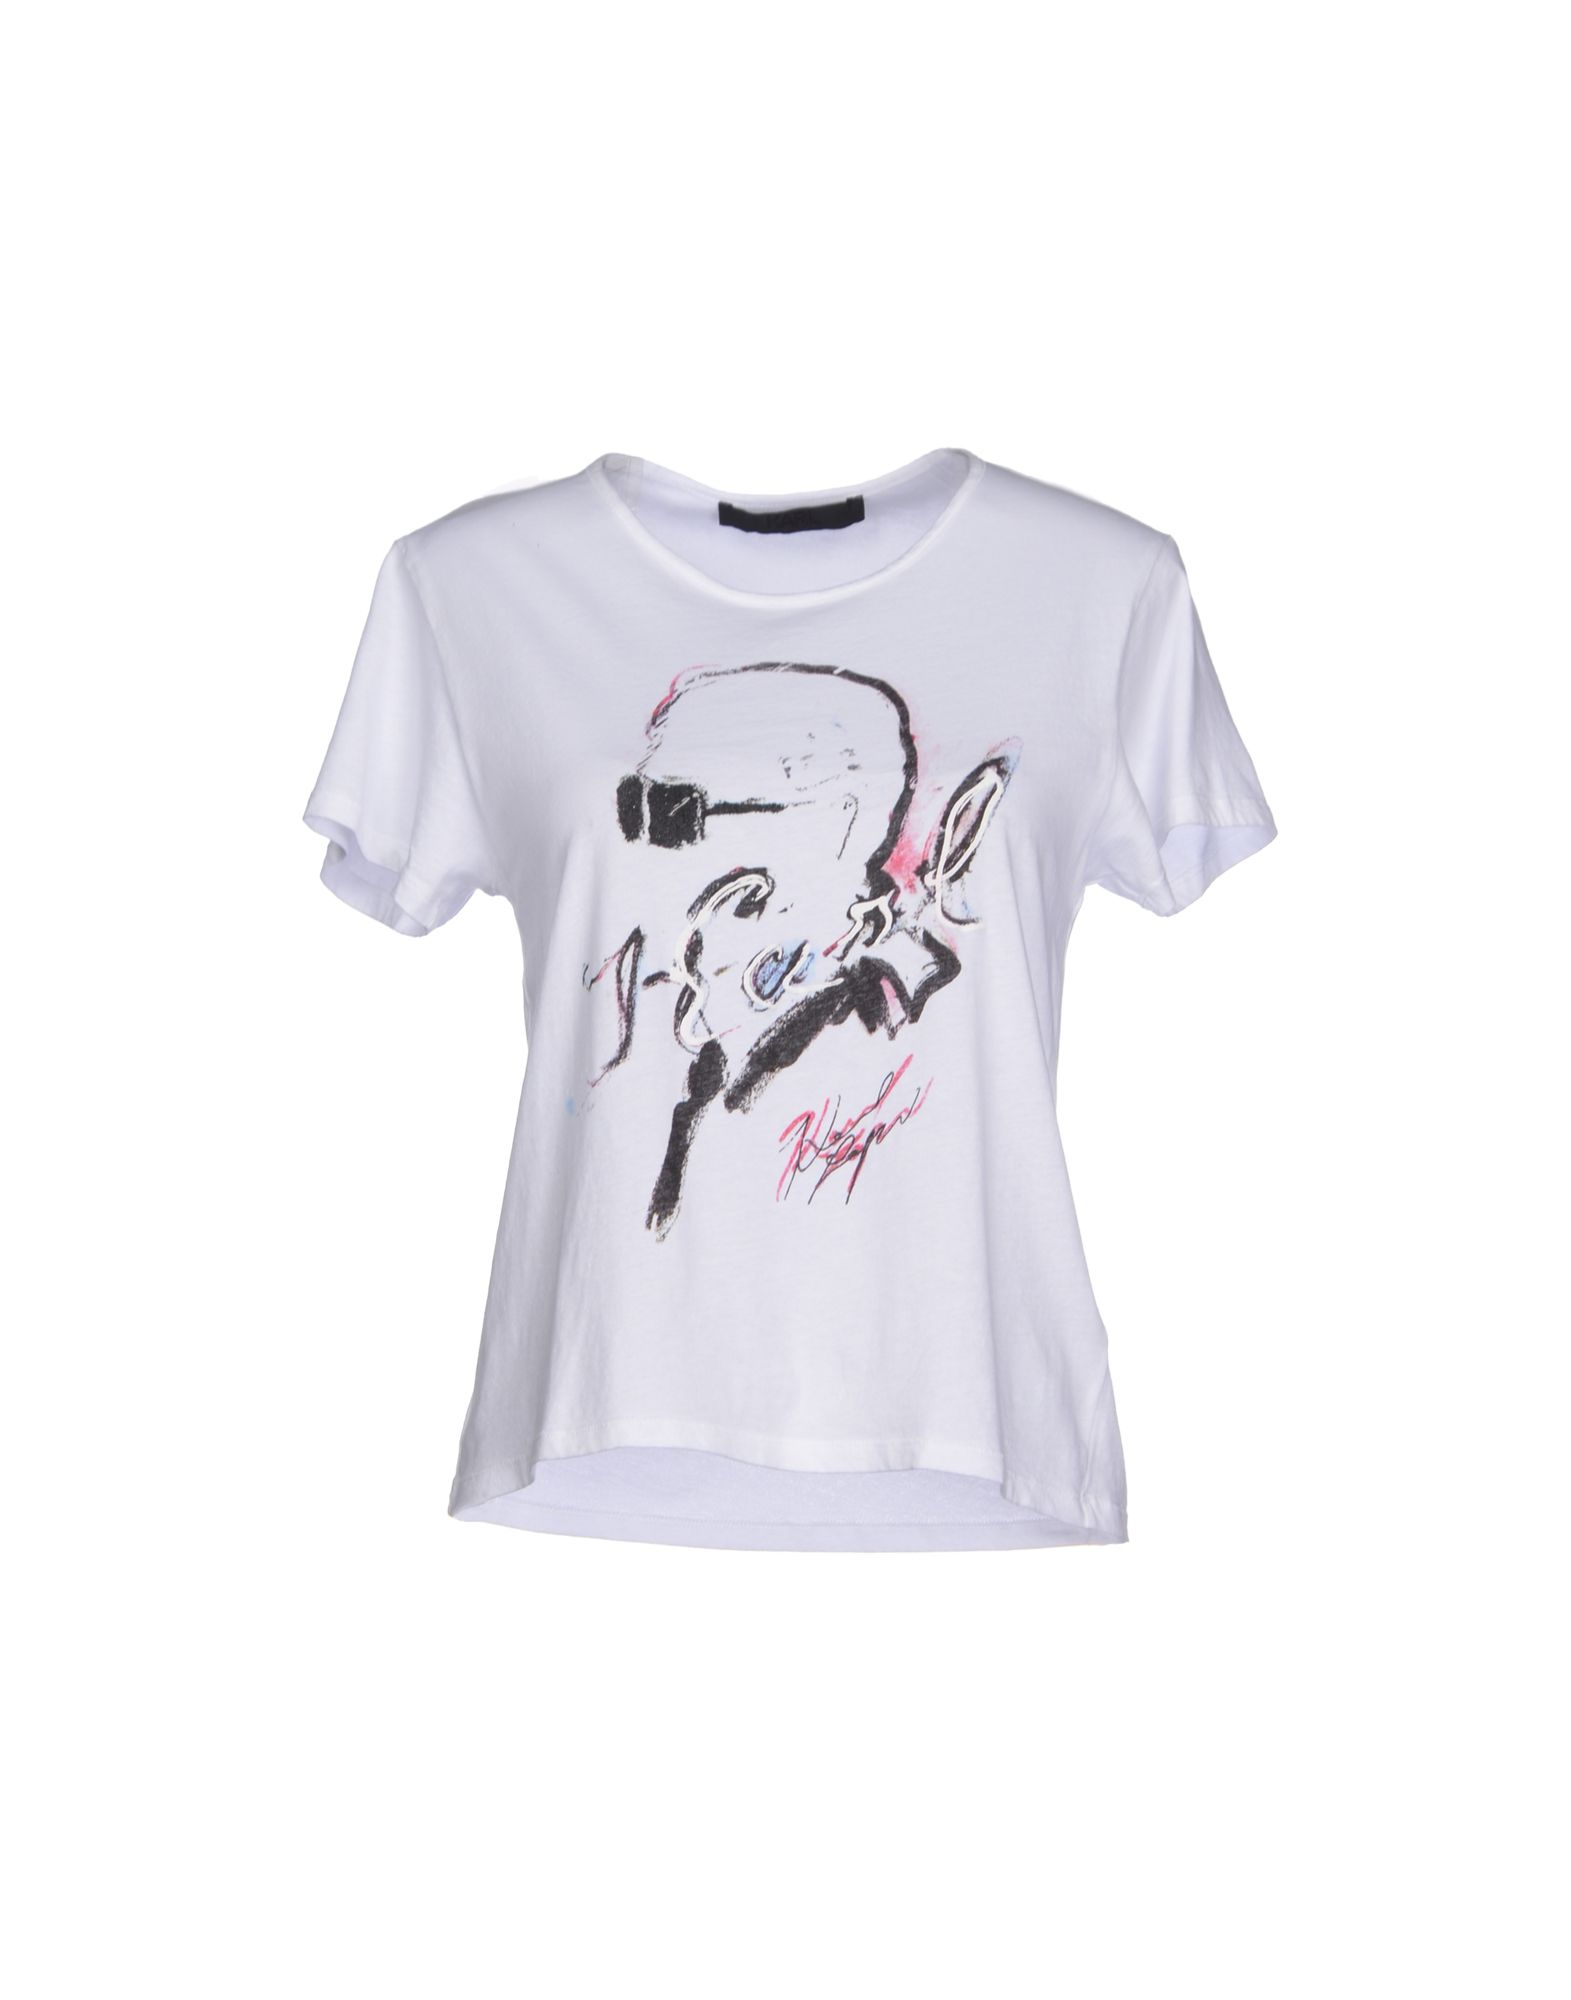 karl by karl lagerfeld t shirt in white lyst. Black Bedroom Furniture Sets. Home Design Ideas